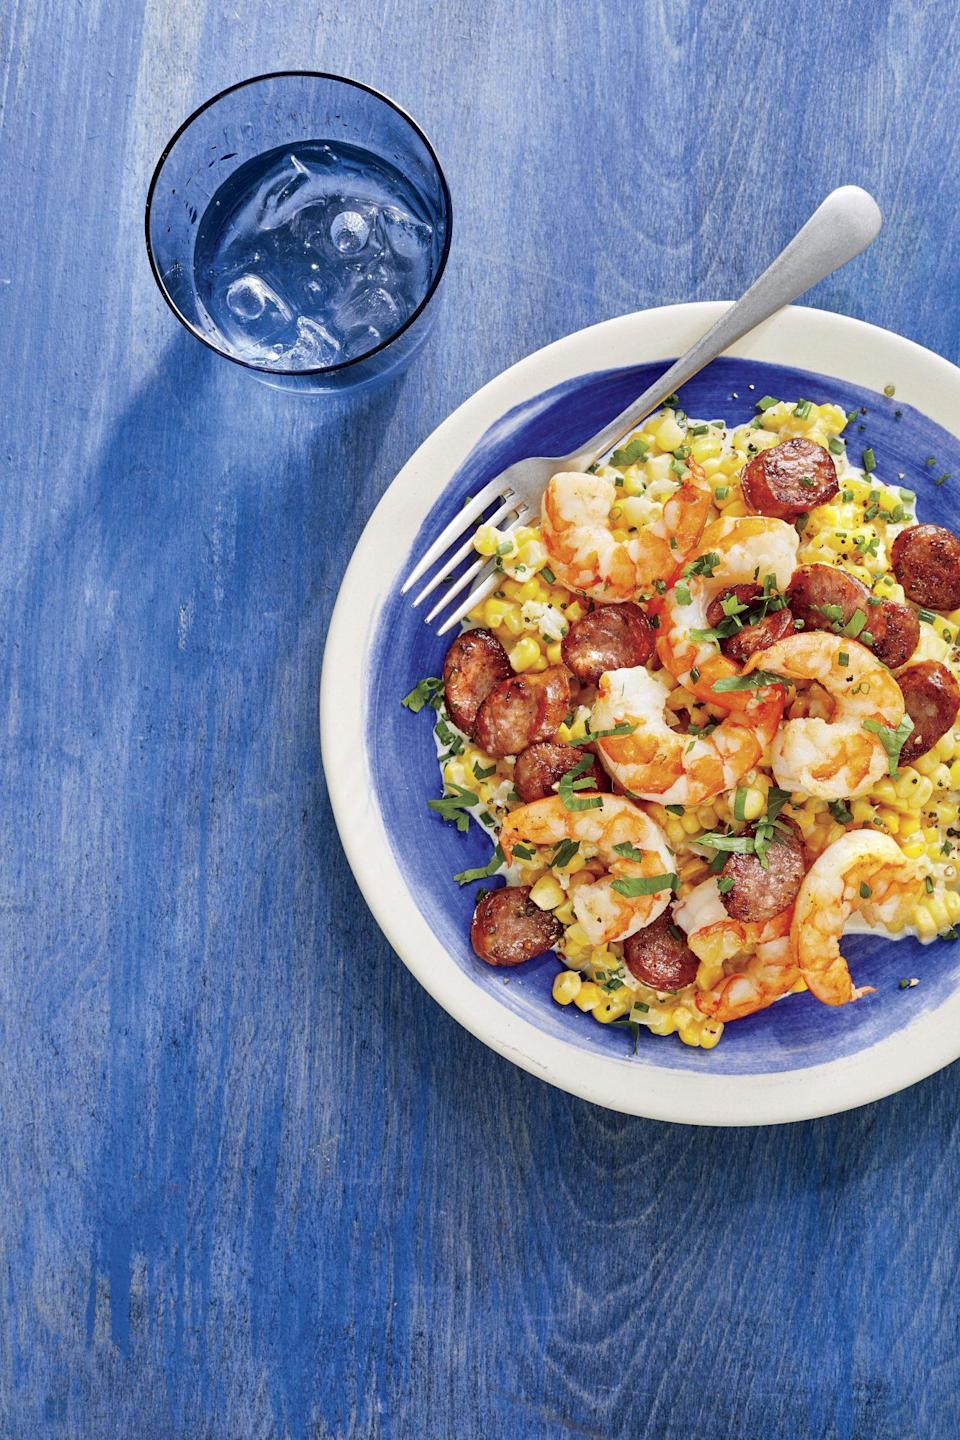 "<p><strong>Recipe: </strong><a href=""https://www.southernliving.com/recipes/skillet-corn-shrimp-sausage"" rel=""nofollow noopener"" target=""_blank"" data-ylk=""slk:Skillet Corn with Shrimp and Sausage"" class=""link rapid-noclick-resp""><strong>Skillet Corn with Shrimp and Sausage</strong></a></p> <p>This skillet recipe was so popular because it satisfies everything you could need in a weeknight dinner recipe: one dish, only 30 minutes of time, and fresh ingredients. Our readers found fun ways to mix it up using whatever fresh veggies or proteins they had on hand. </p>"